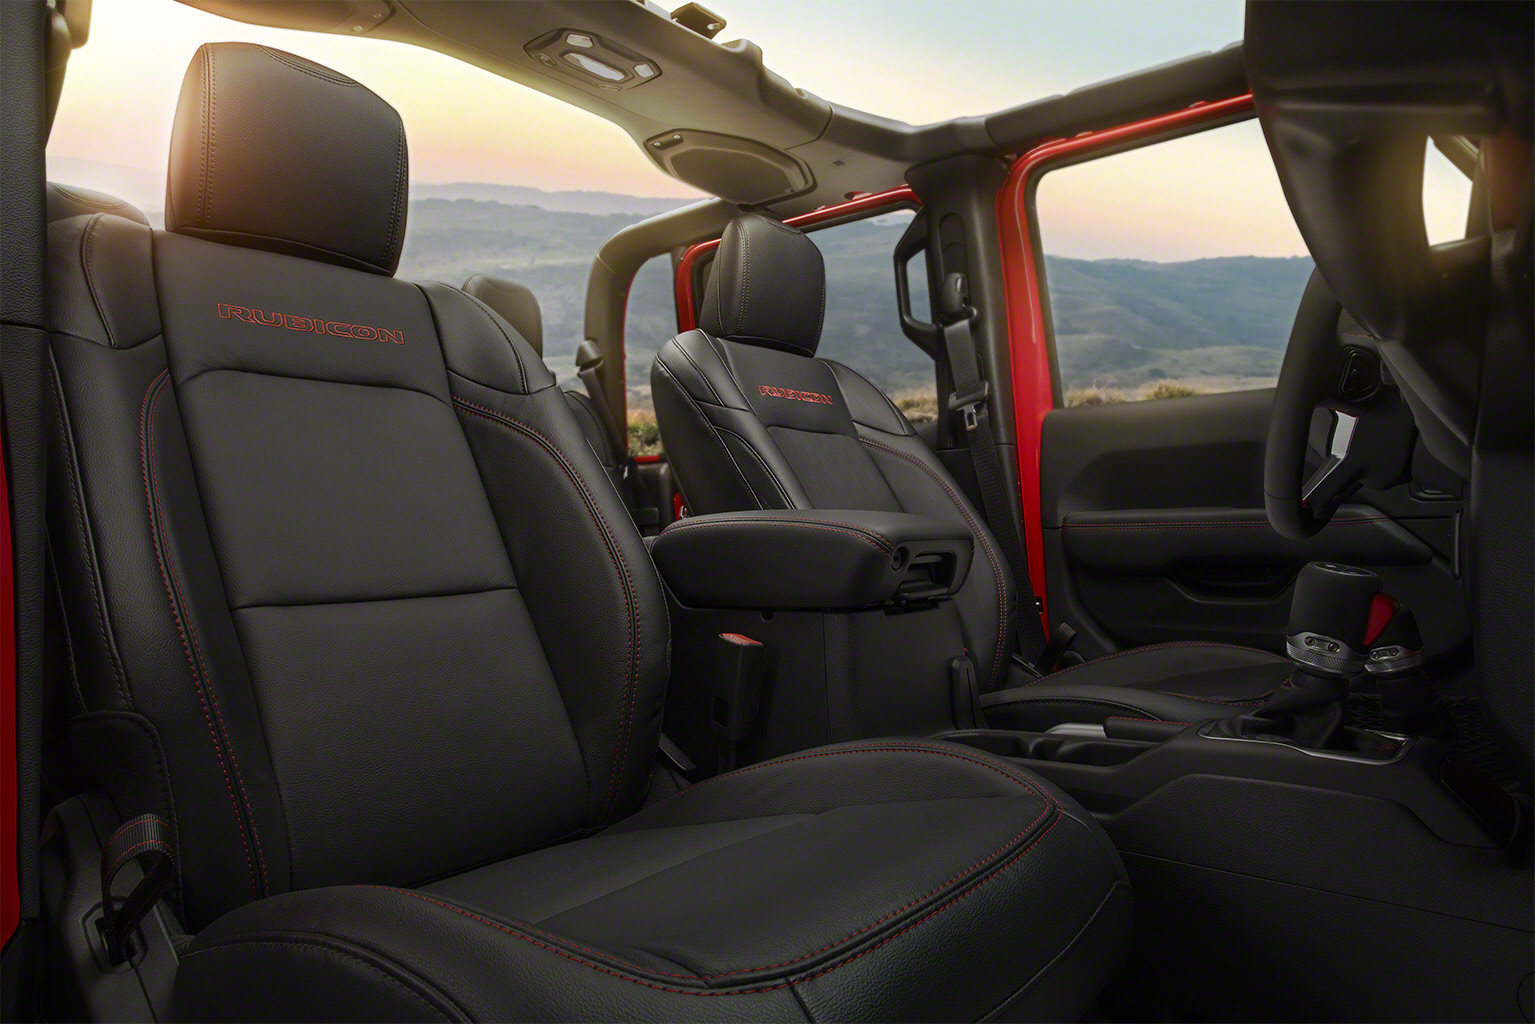 2020 Jeep Gladiator interior photos